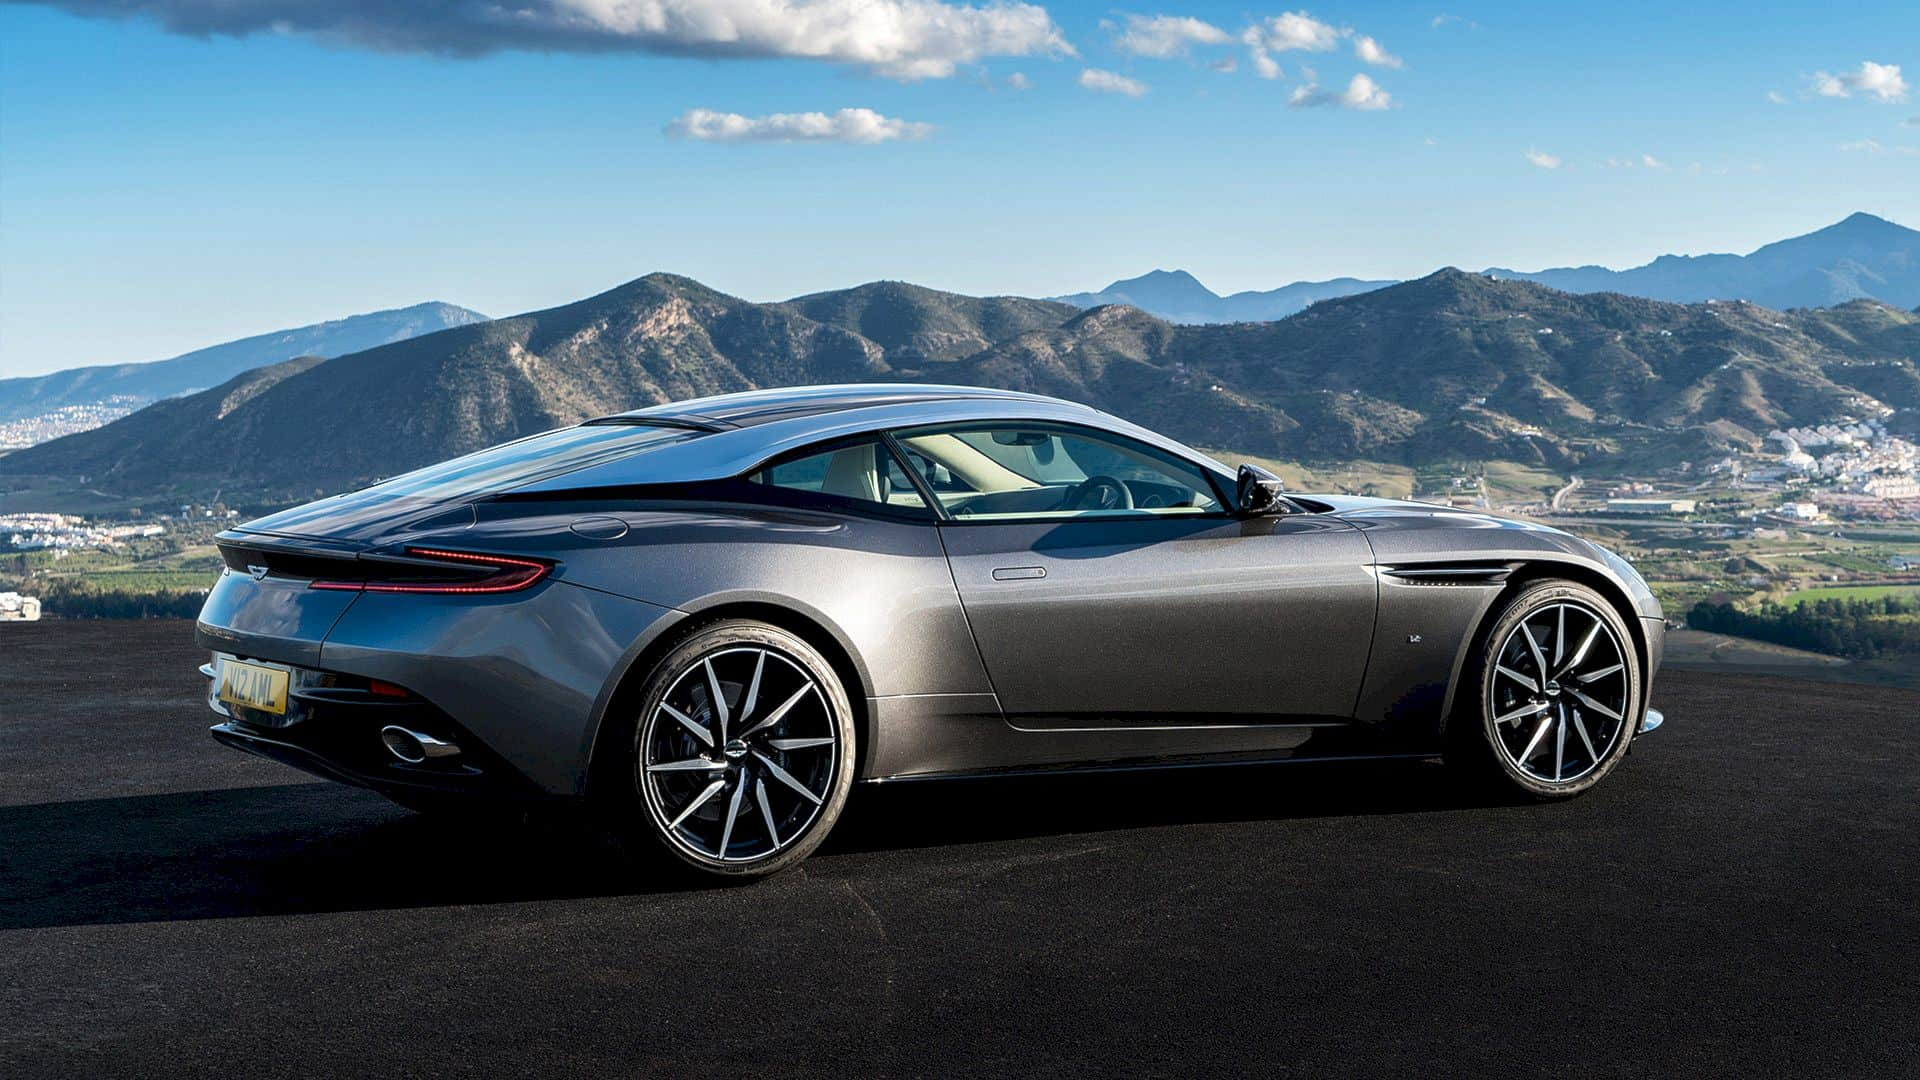 Aston Martin DB 11 – Shape, Space & Sound